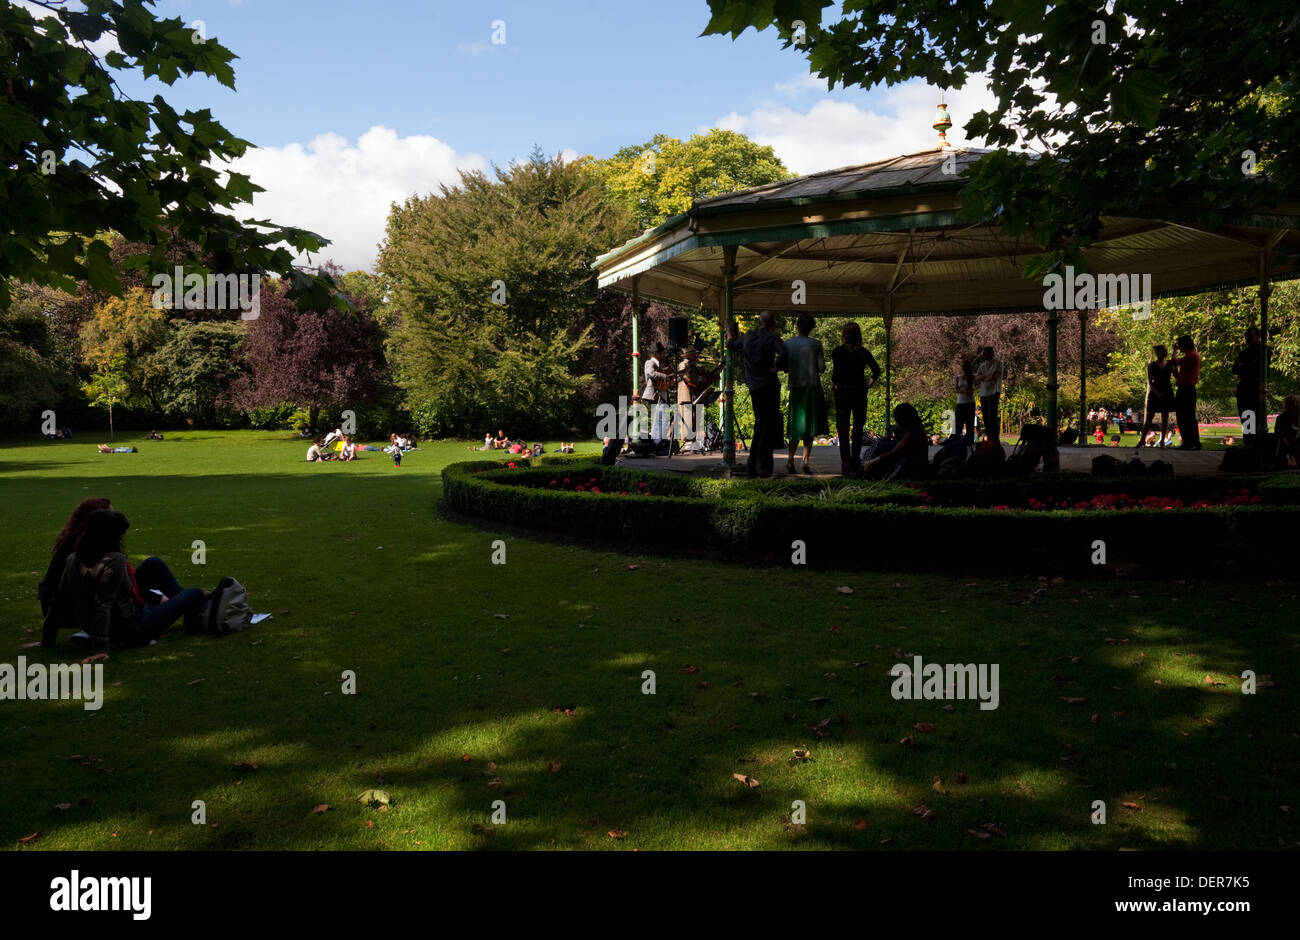 Weekend entertainment on the bandstand in St Stephen's Green Park, Dublin City, Ireland. - Stock Image